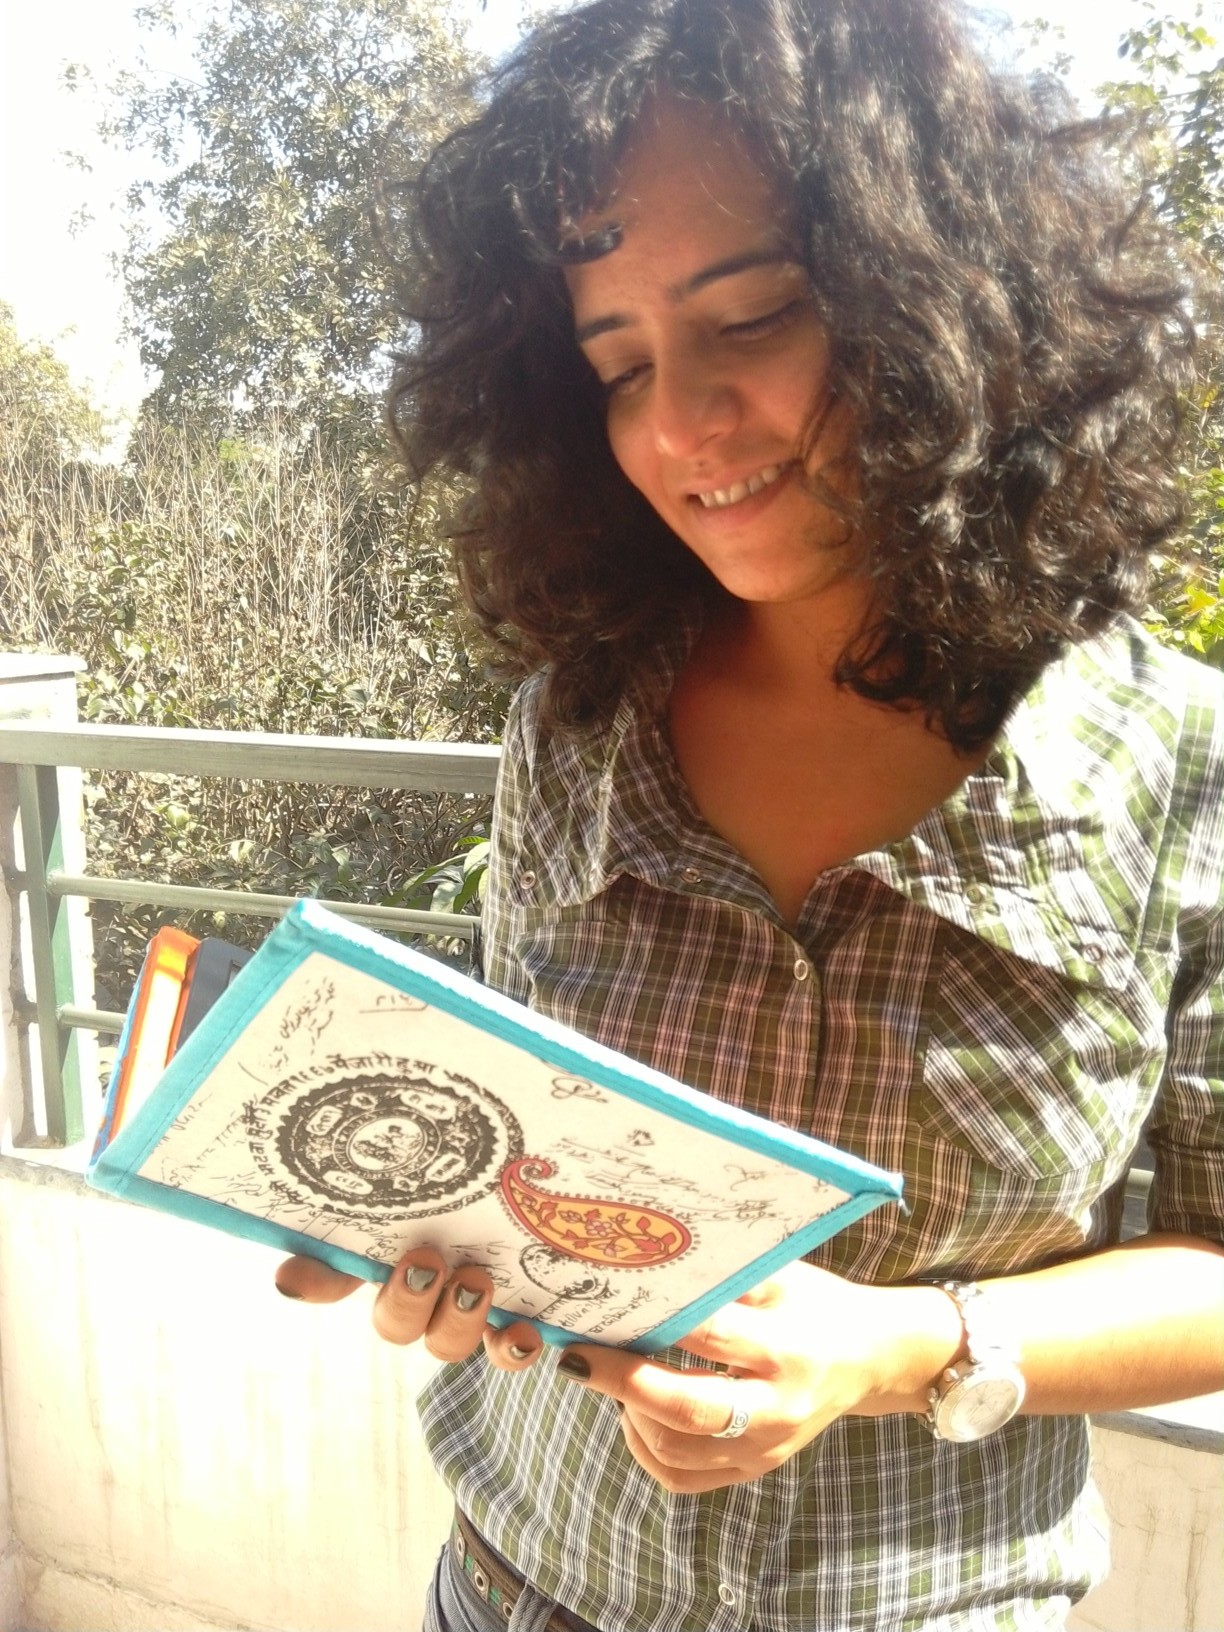 Hina Khan with the hand-crafted book-cover she made for me.